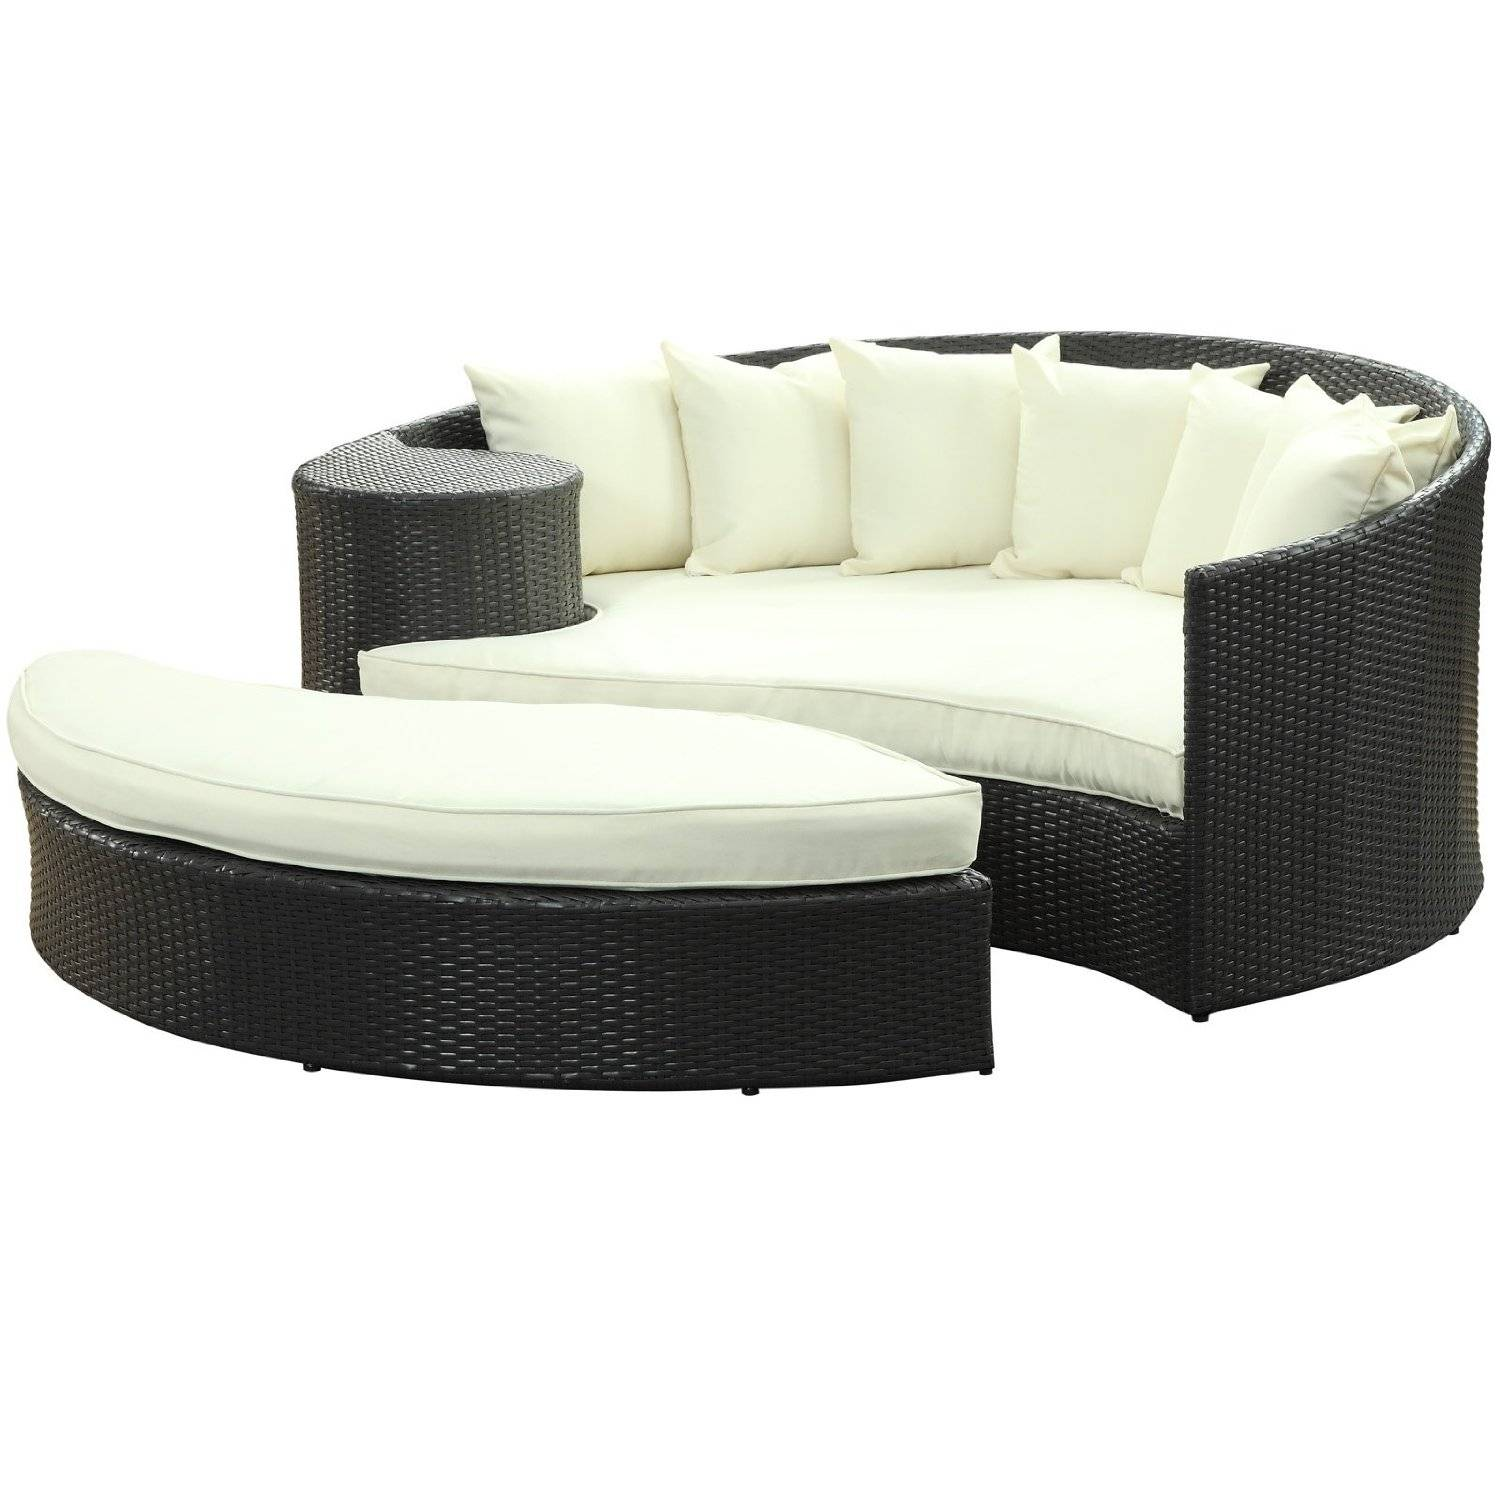 Outdoor Leisure Sectional Sofa, Rattan Daybed